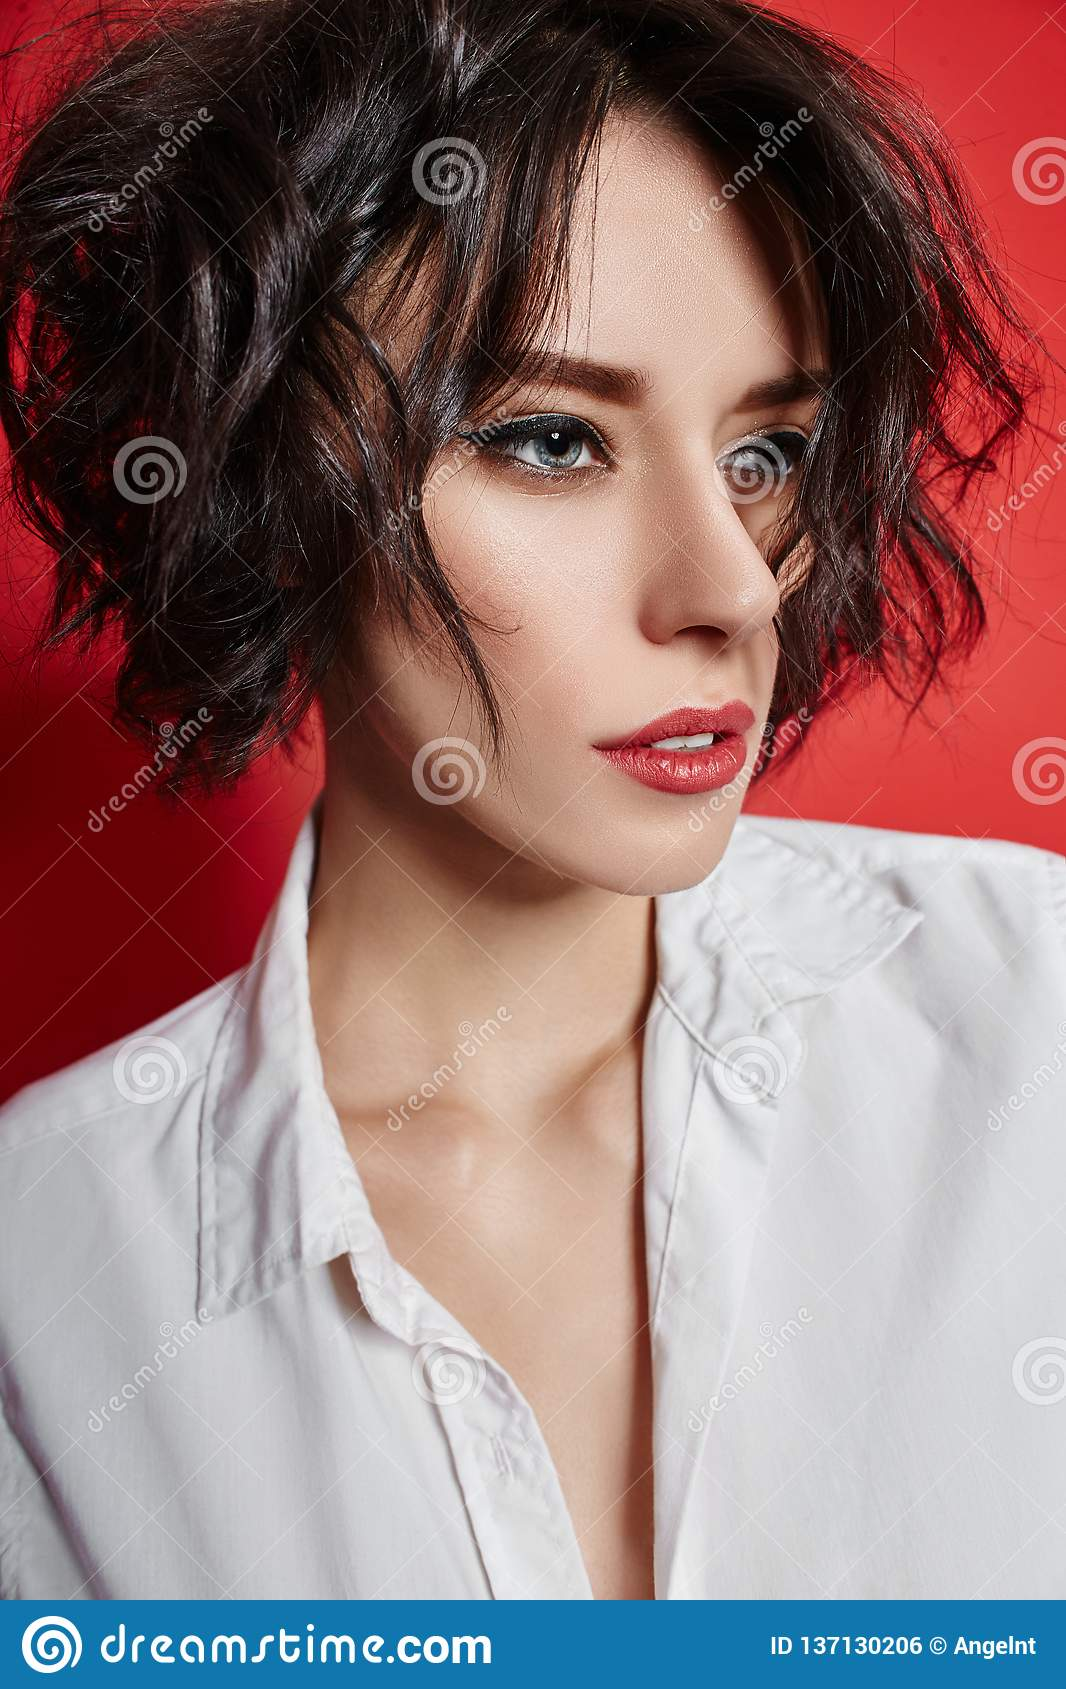 Nude Woman Short Hairstyle Stock Images - Download 289 Royalty Free Photos-8083